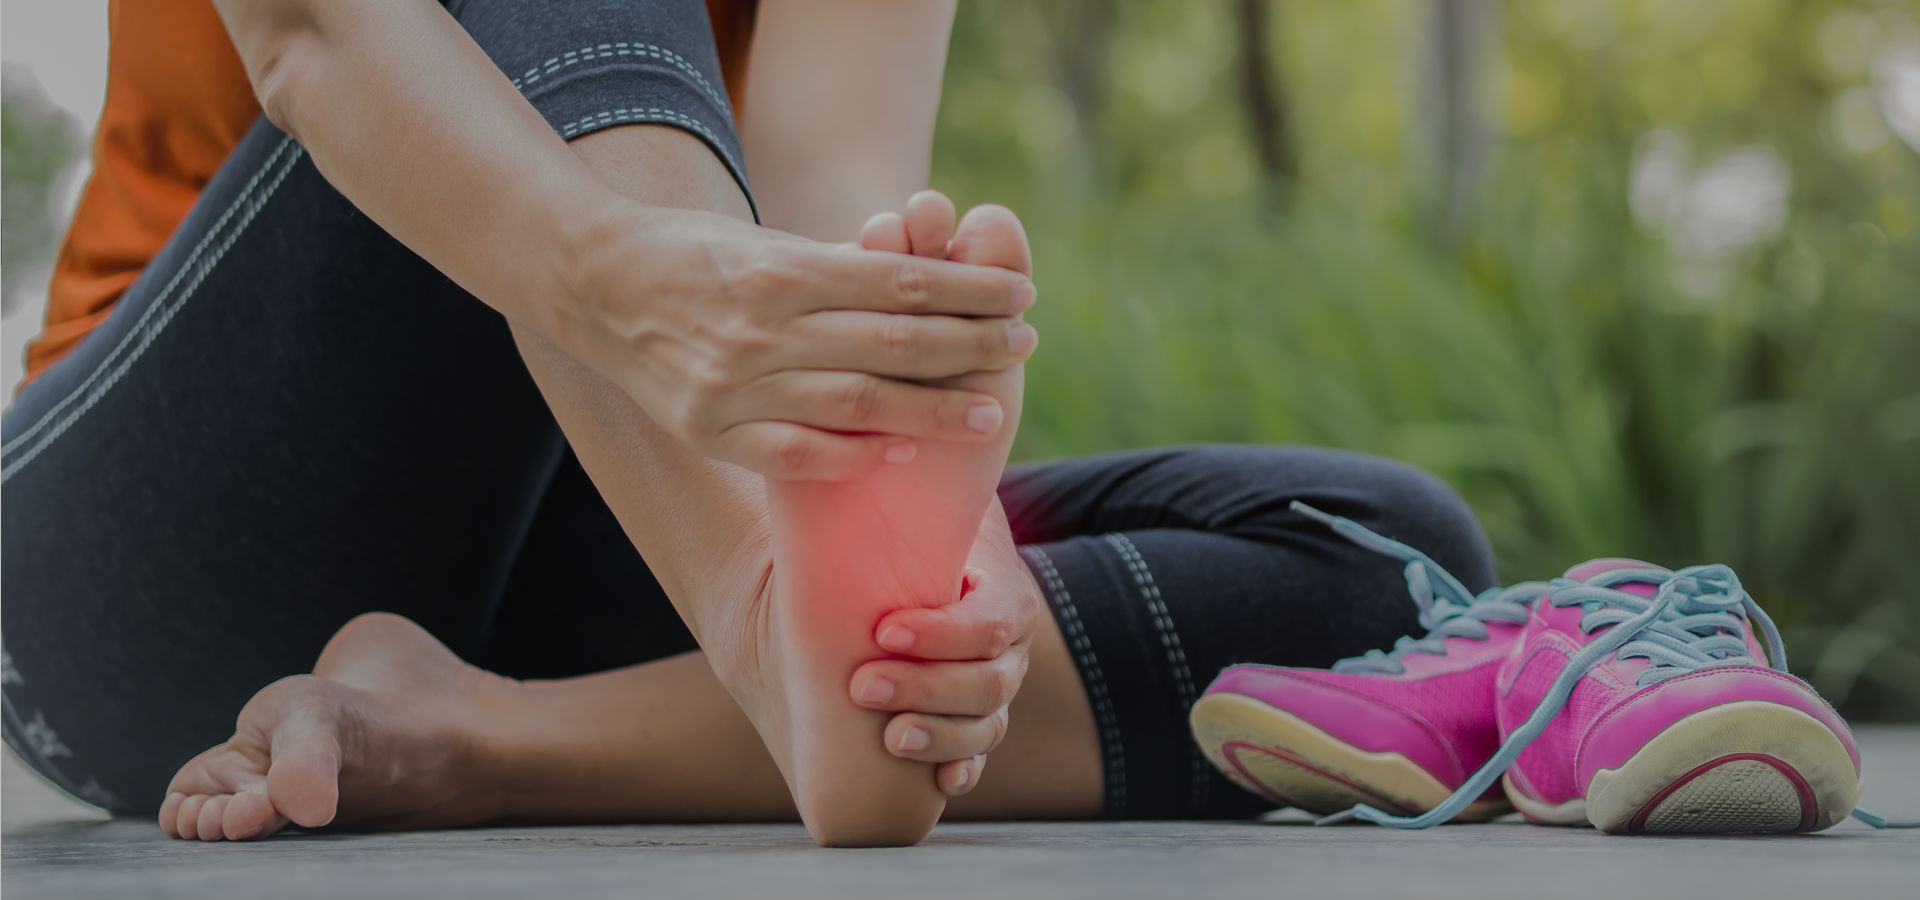 SUFFERED A SPORTS INJURY TO YOUR FEET?